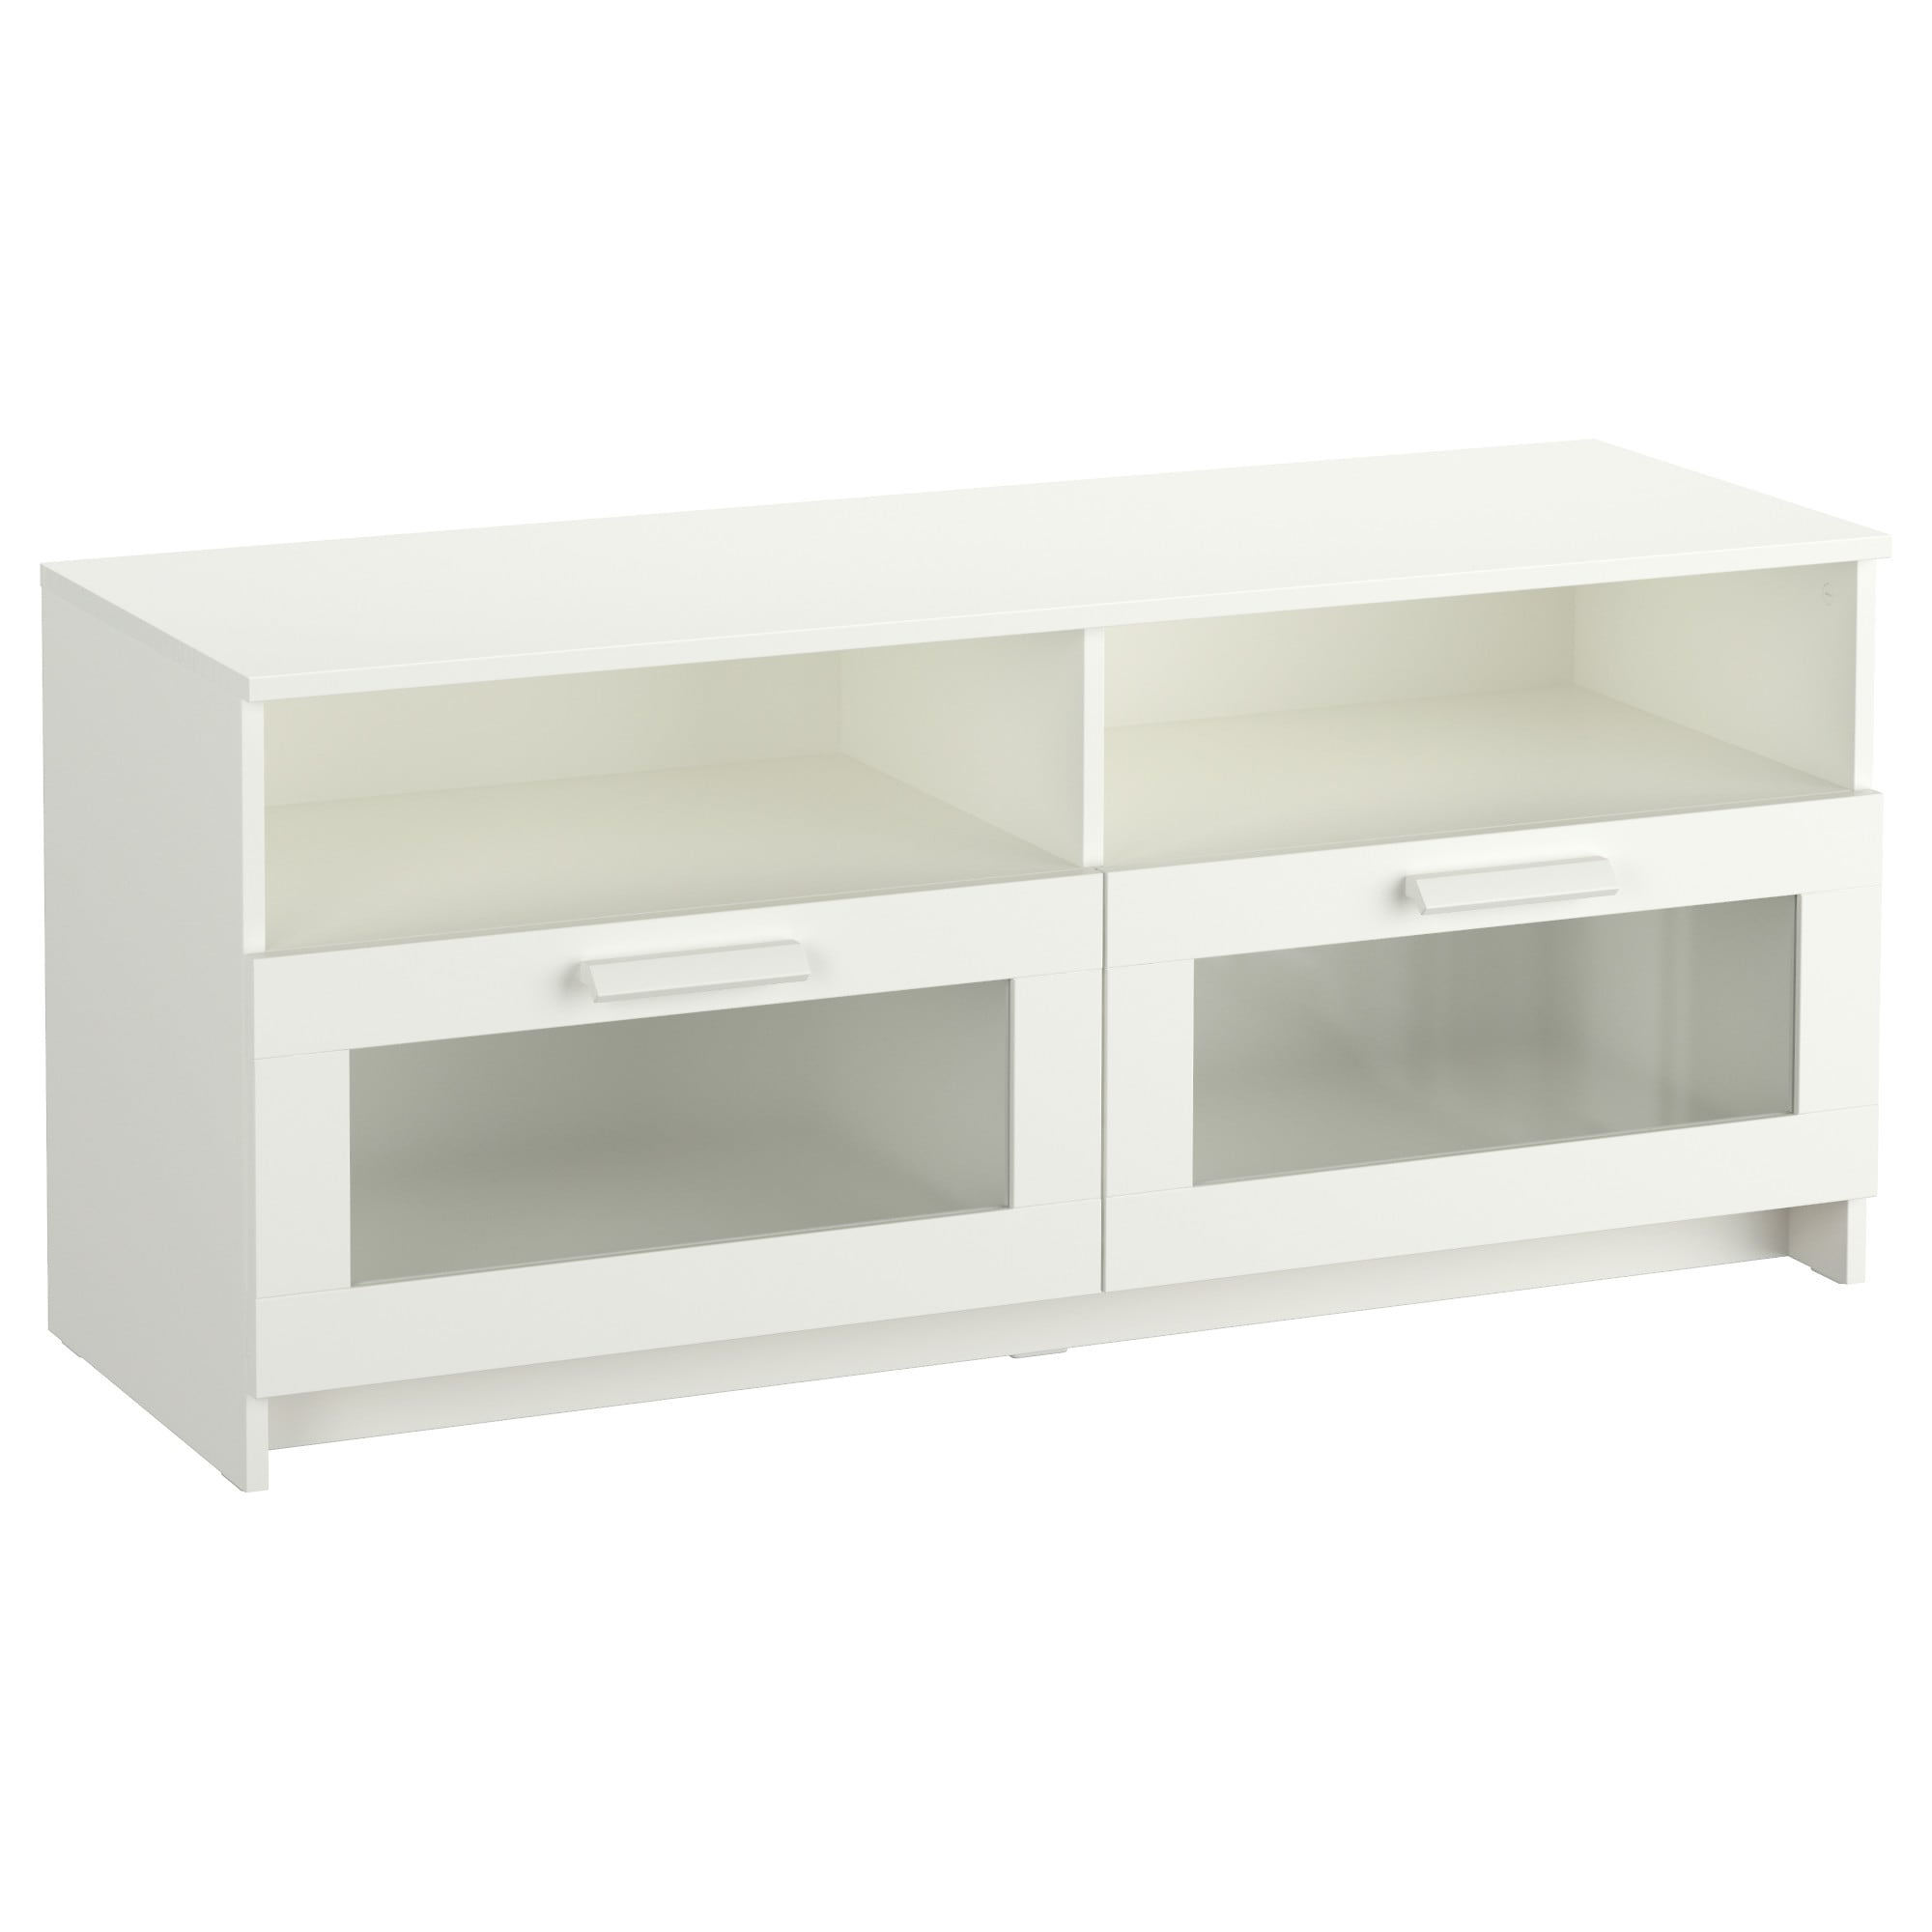 Ikea With Regard To Popular Ikea Tv Console Tables (Gallery 10 of 20)